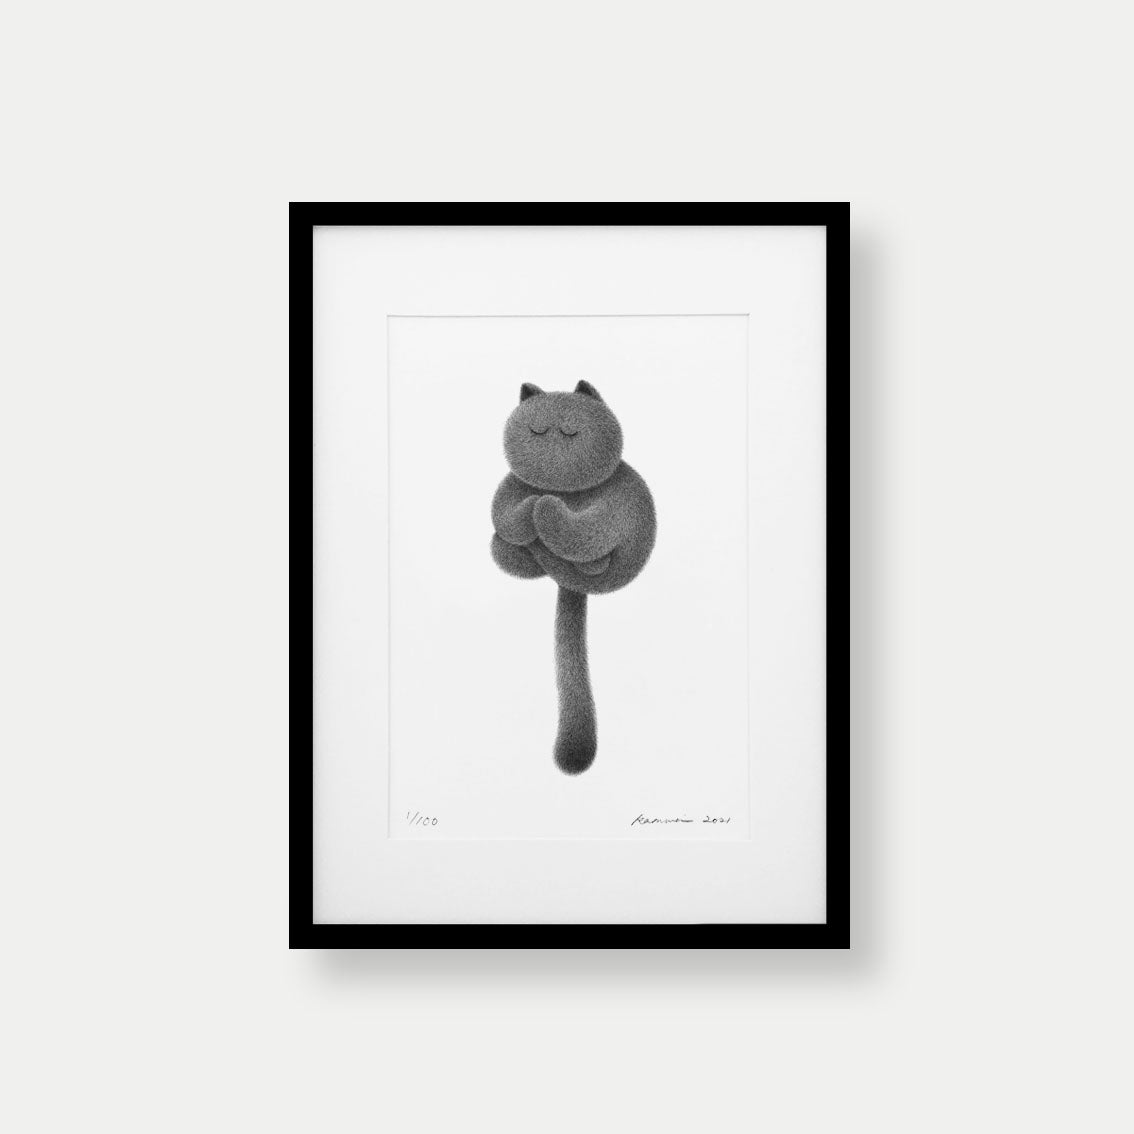 Image of Kitty No.67 – A3 Limited Edition Print